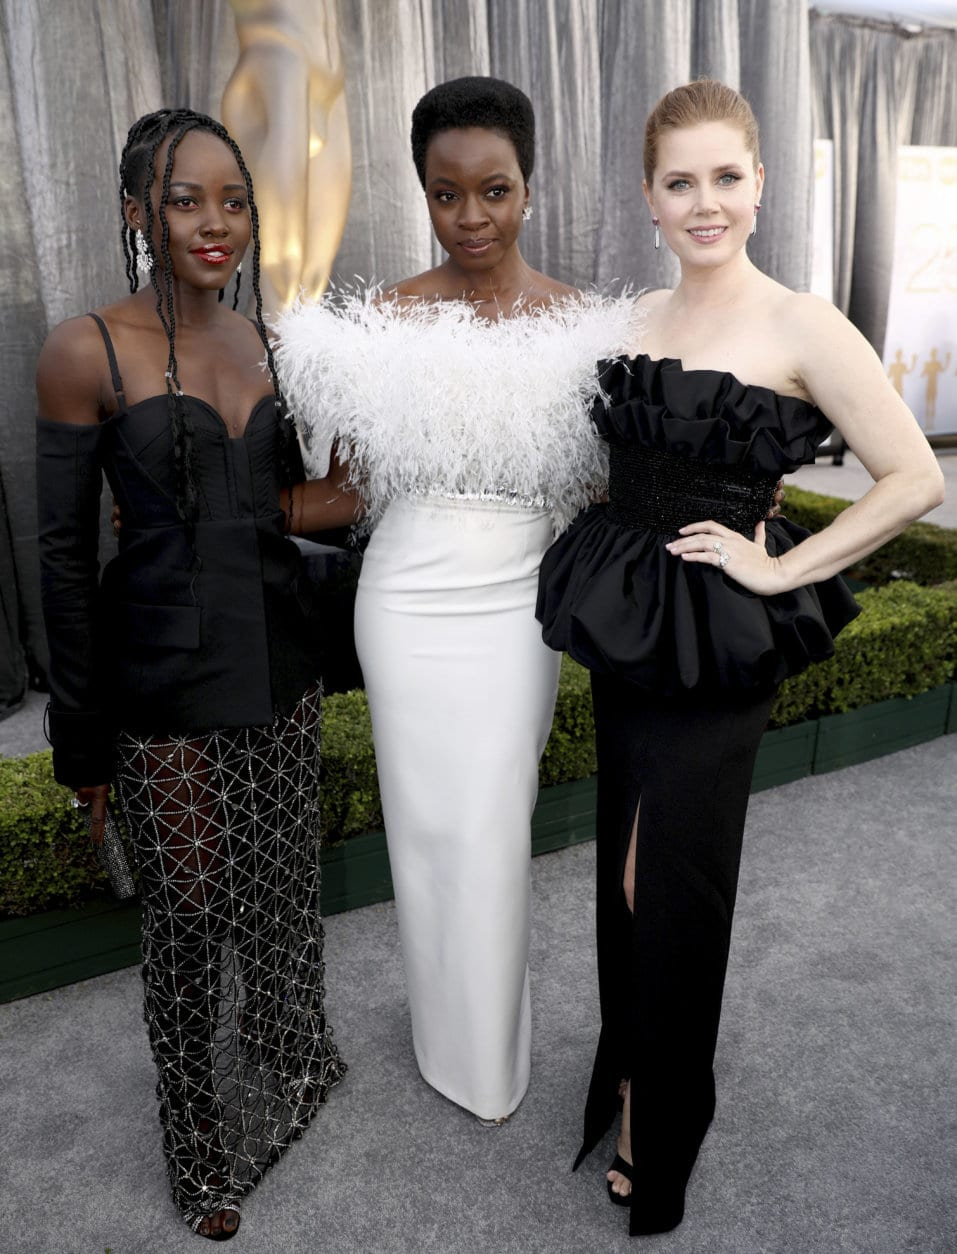 Lupita Nyong'o, from left, Danai Gurira, and Amy Adams arrive at the 25th annual Screen Actors Guild Awards at the Shrine Auditorium & Expo Hall on Sunday, Jan. 27, 2019, in Los Angeles. (Photo by Matt Sayles/Invision/AP)